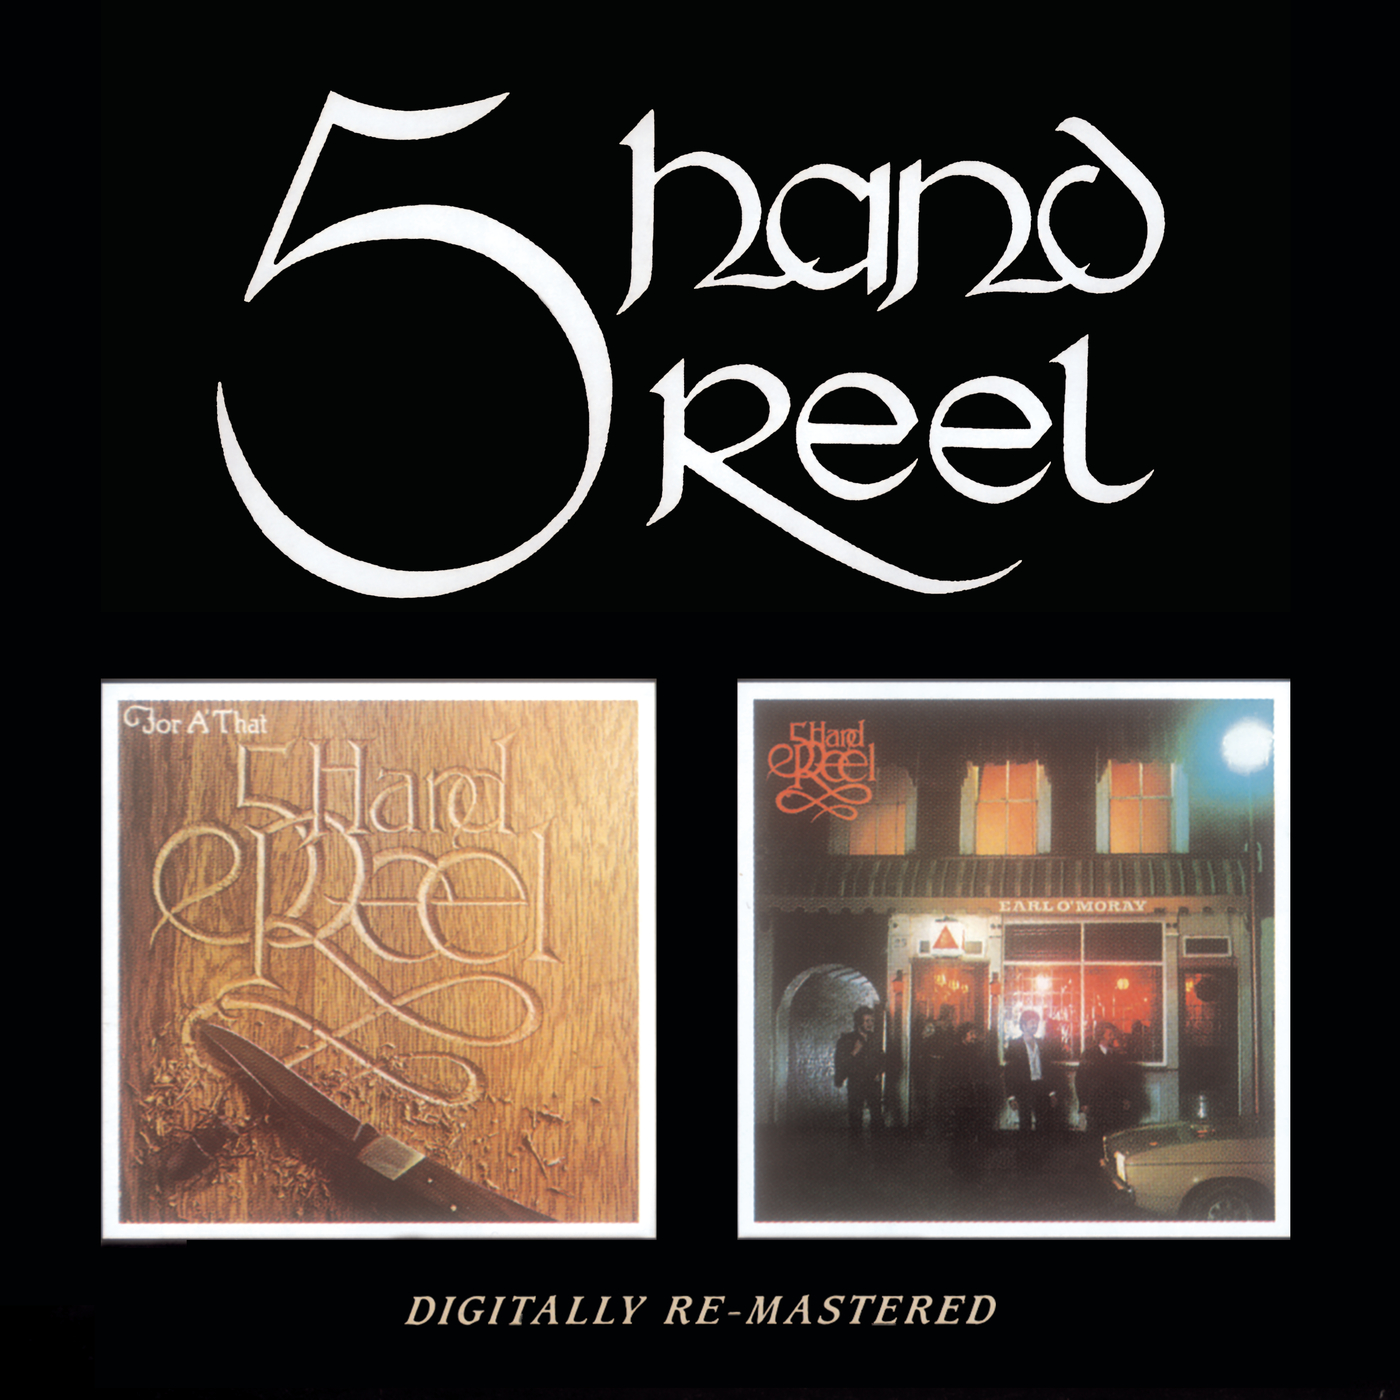 Five Hand Reel / For A' That / Earl O'Moray - 5 Hand Reel